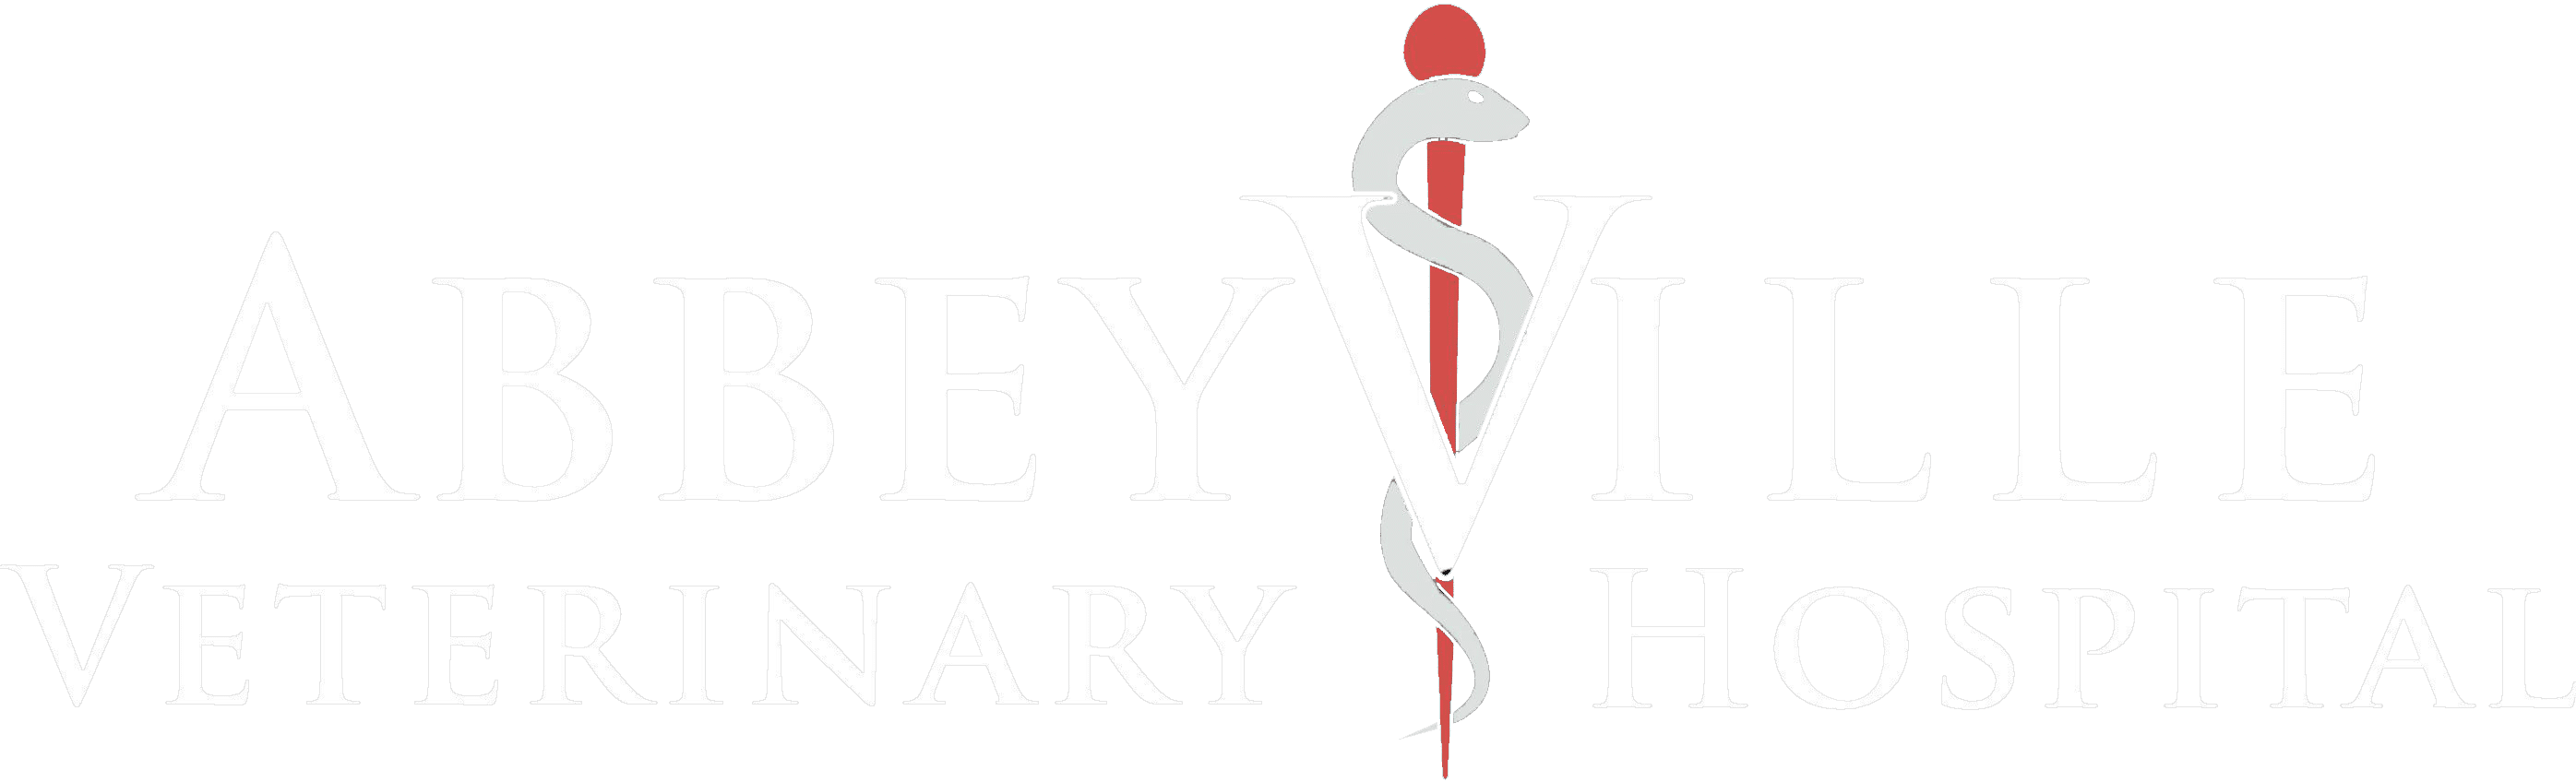 Abbeyville Veterinary Hospital